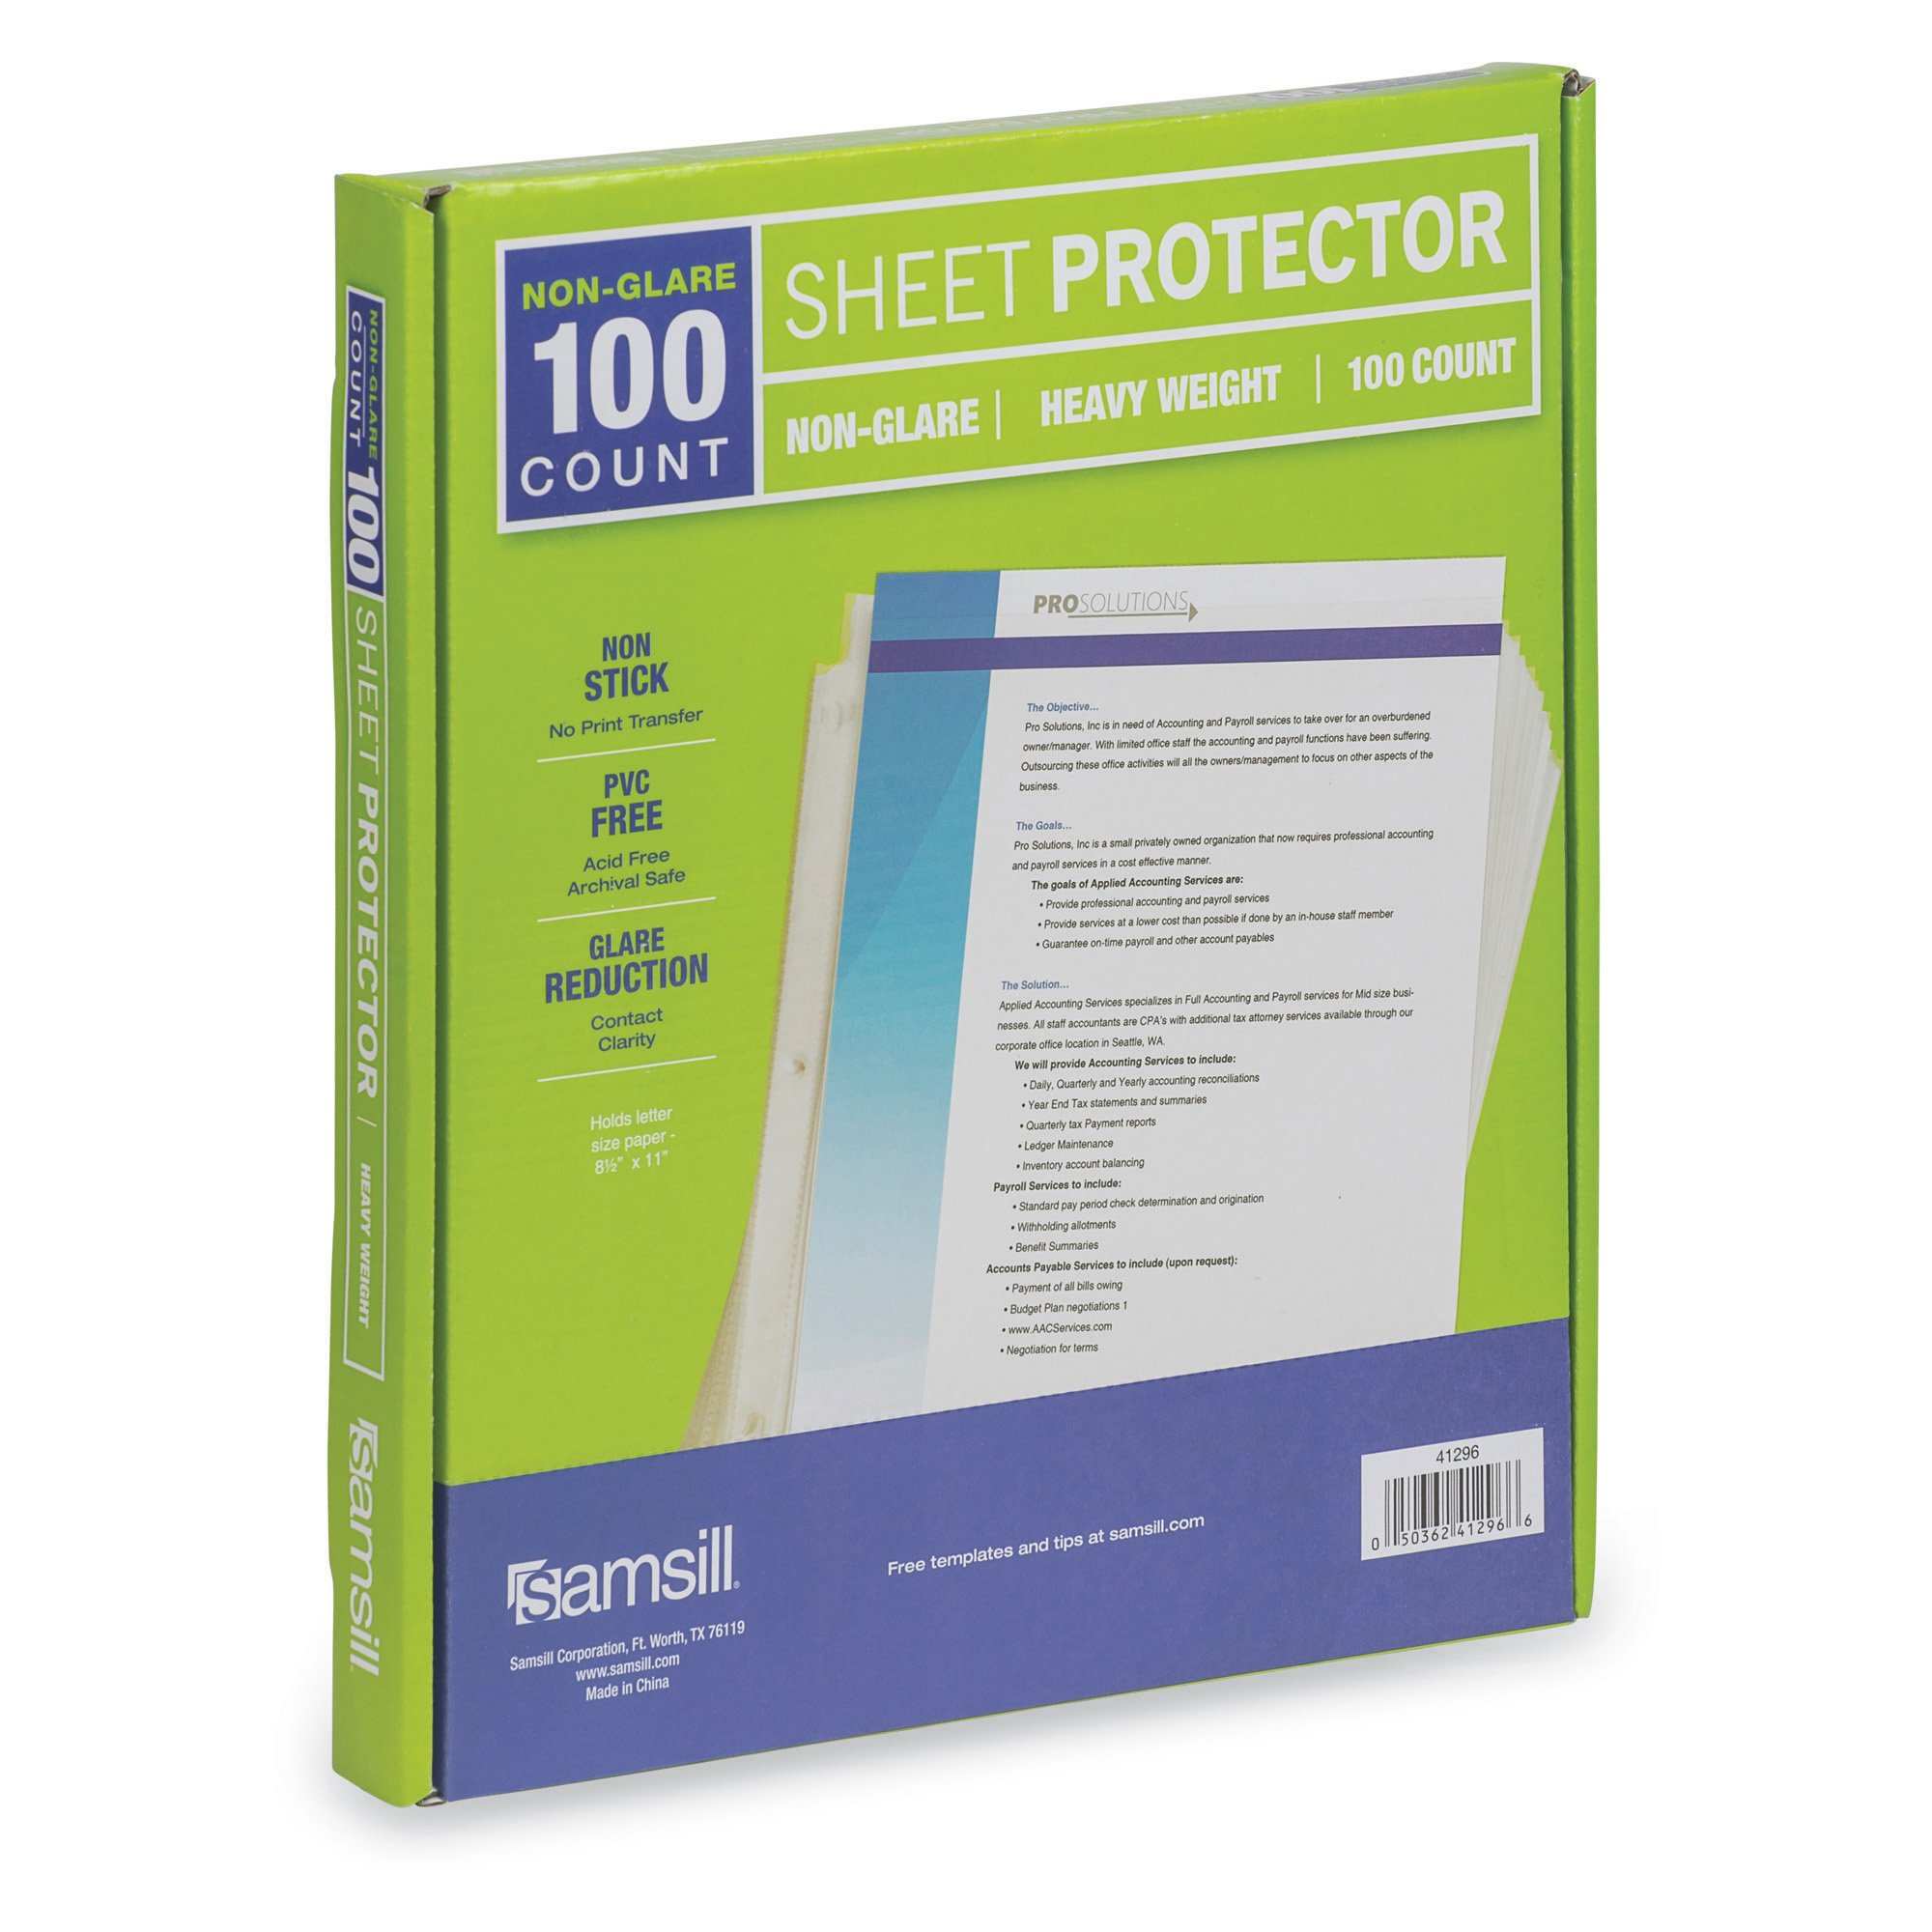 Samsill 100 Non-Glare Heavyweight Sheet Protectors, Reinforced 3 Hole Design Plastic Page Protectors, Archival Safe, Top Load for 8.5 x 11 Inch Sheets, Box of 100 by Samsill